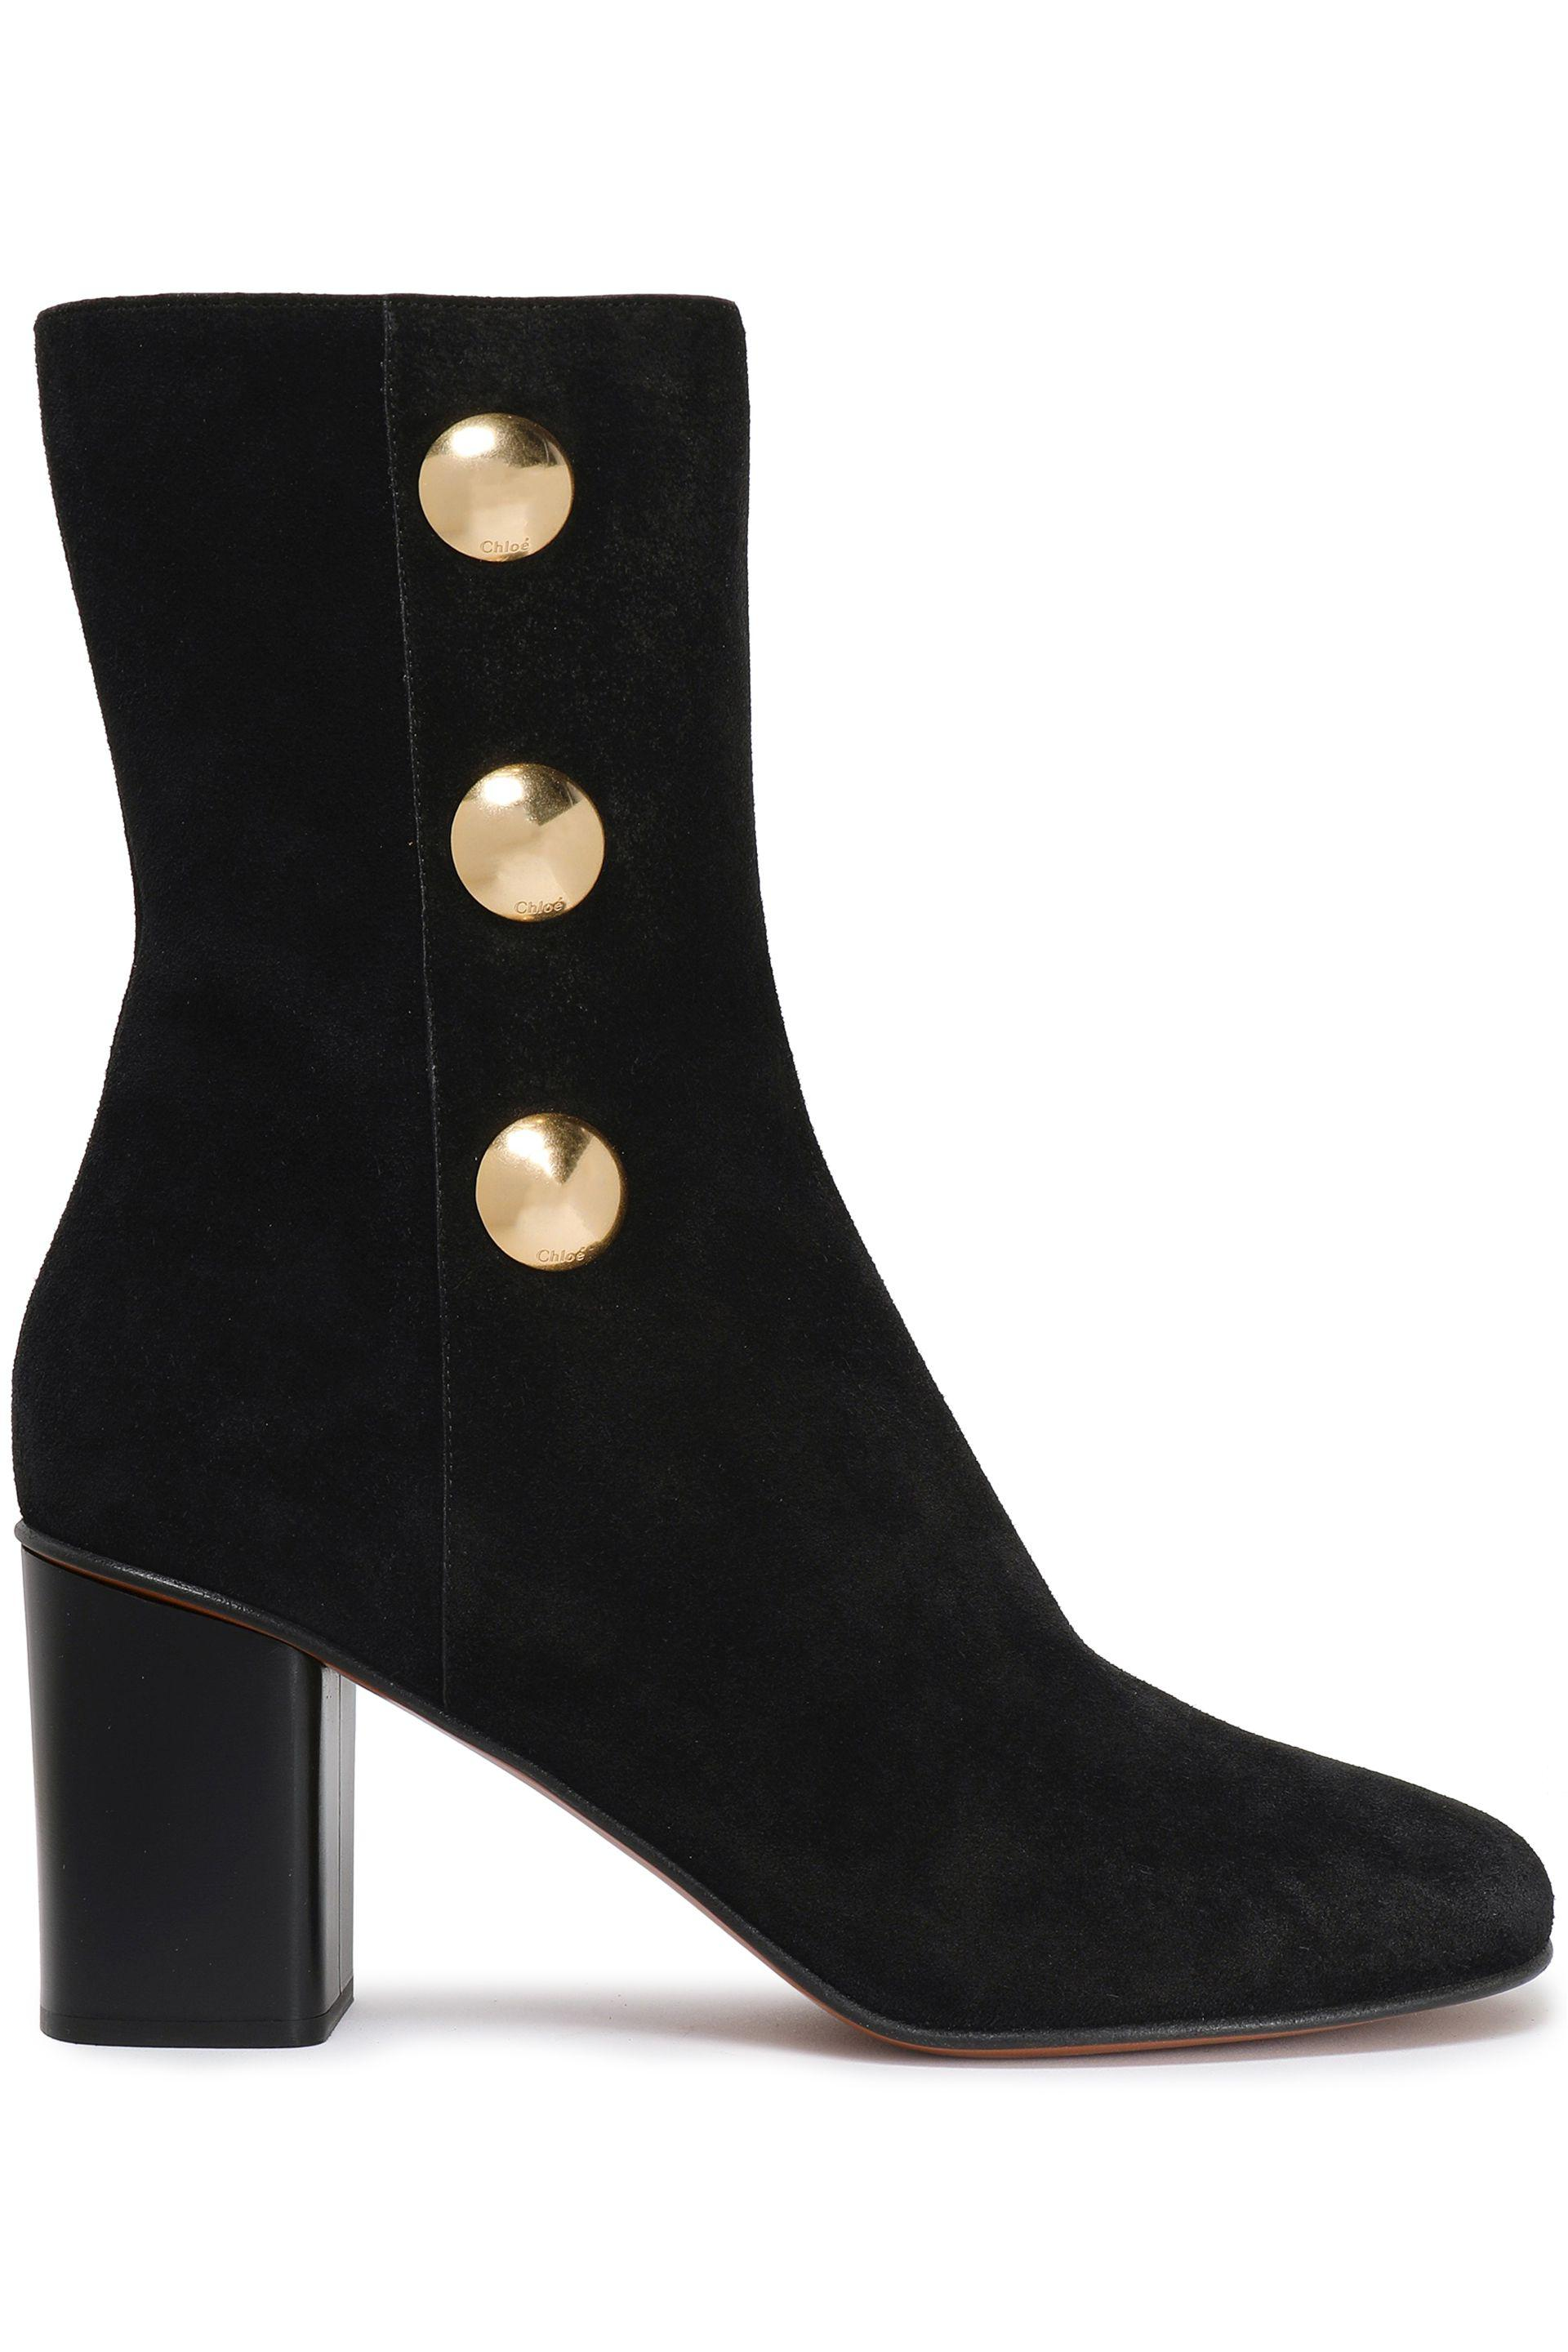 26972efab Chloé Button-embellished Suede Ankle Boots in Black - Lyst